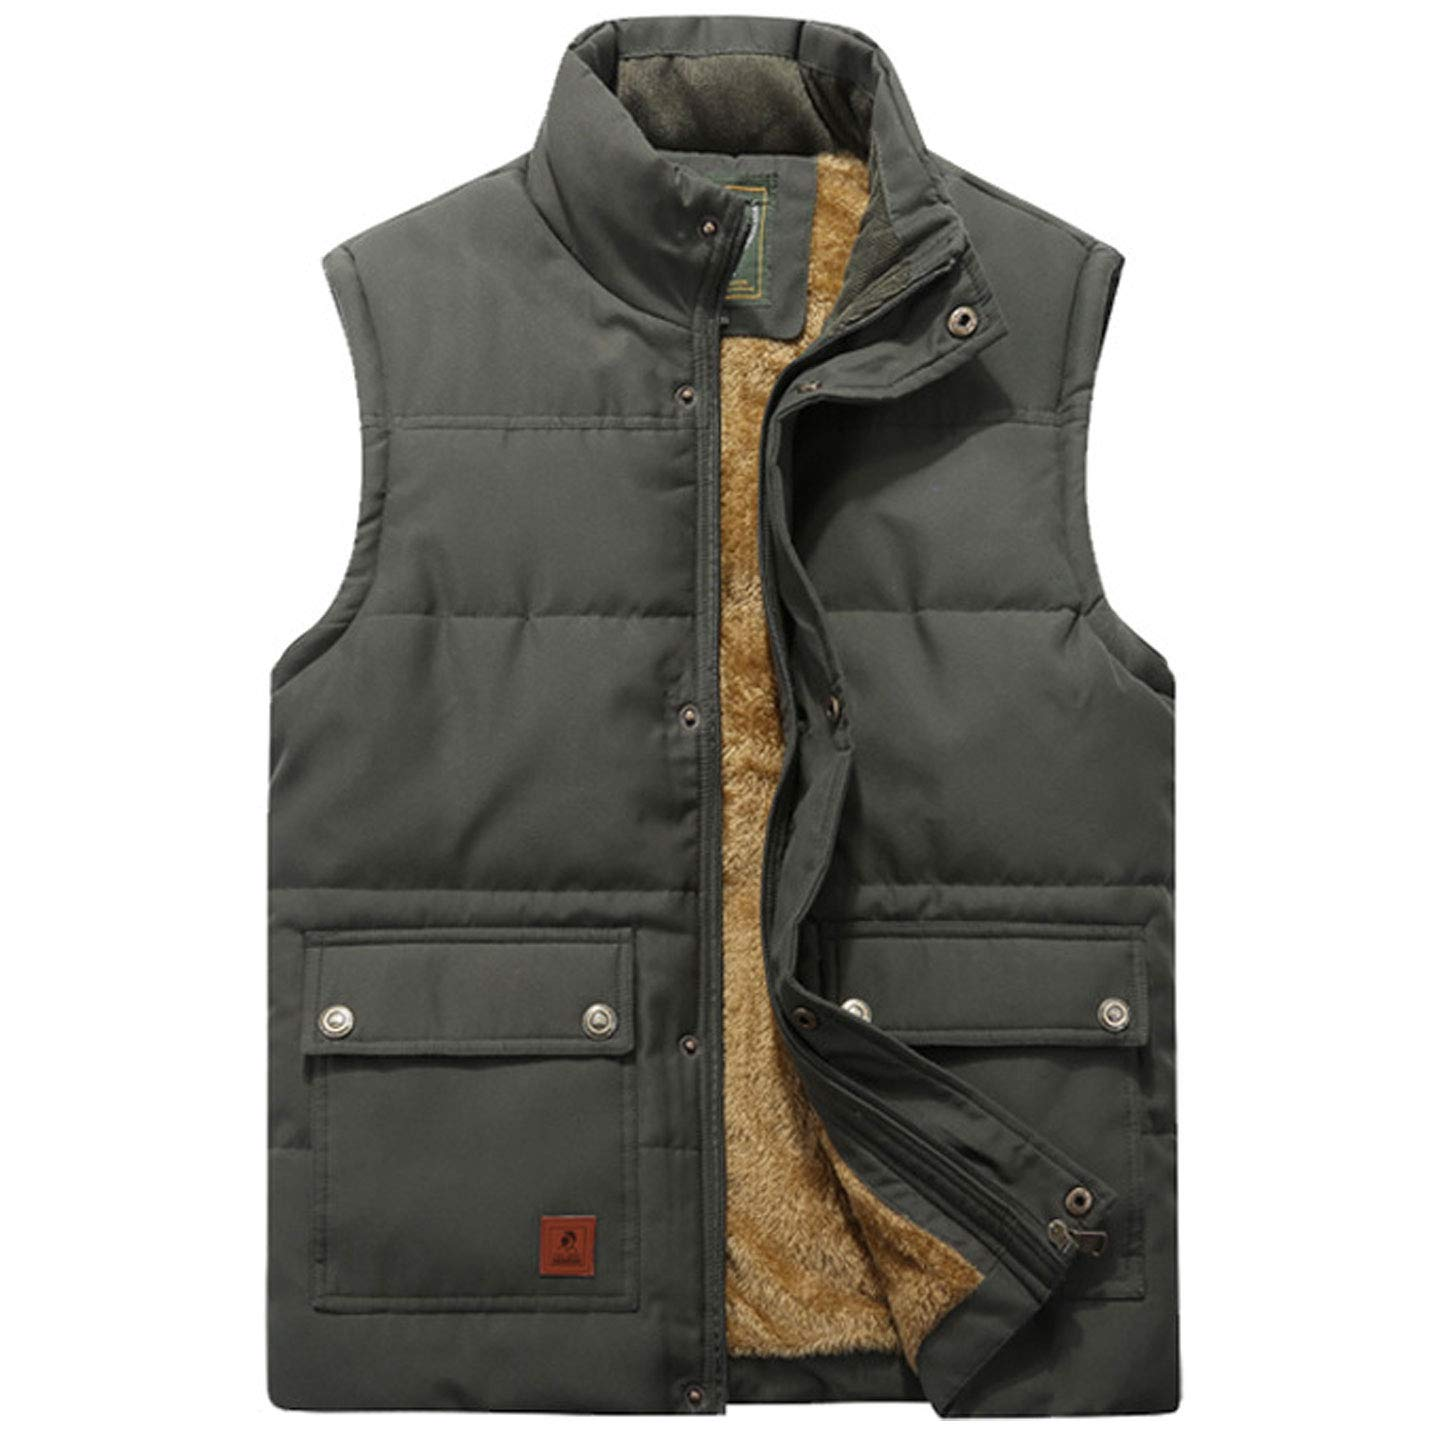 Flygo Men's Winter Warm Outdoor Padded Puffer Vest Thick Fleece Lined Sleeveless Jacket (Style 02 Army Green, Large) by Flygo